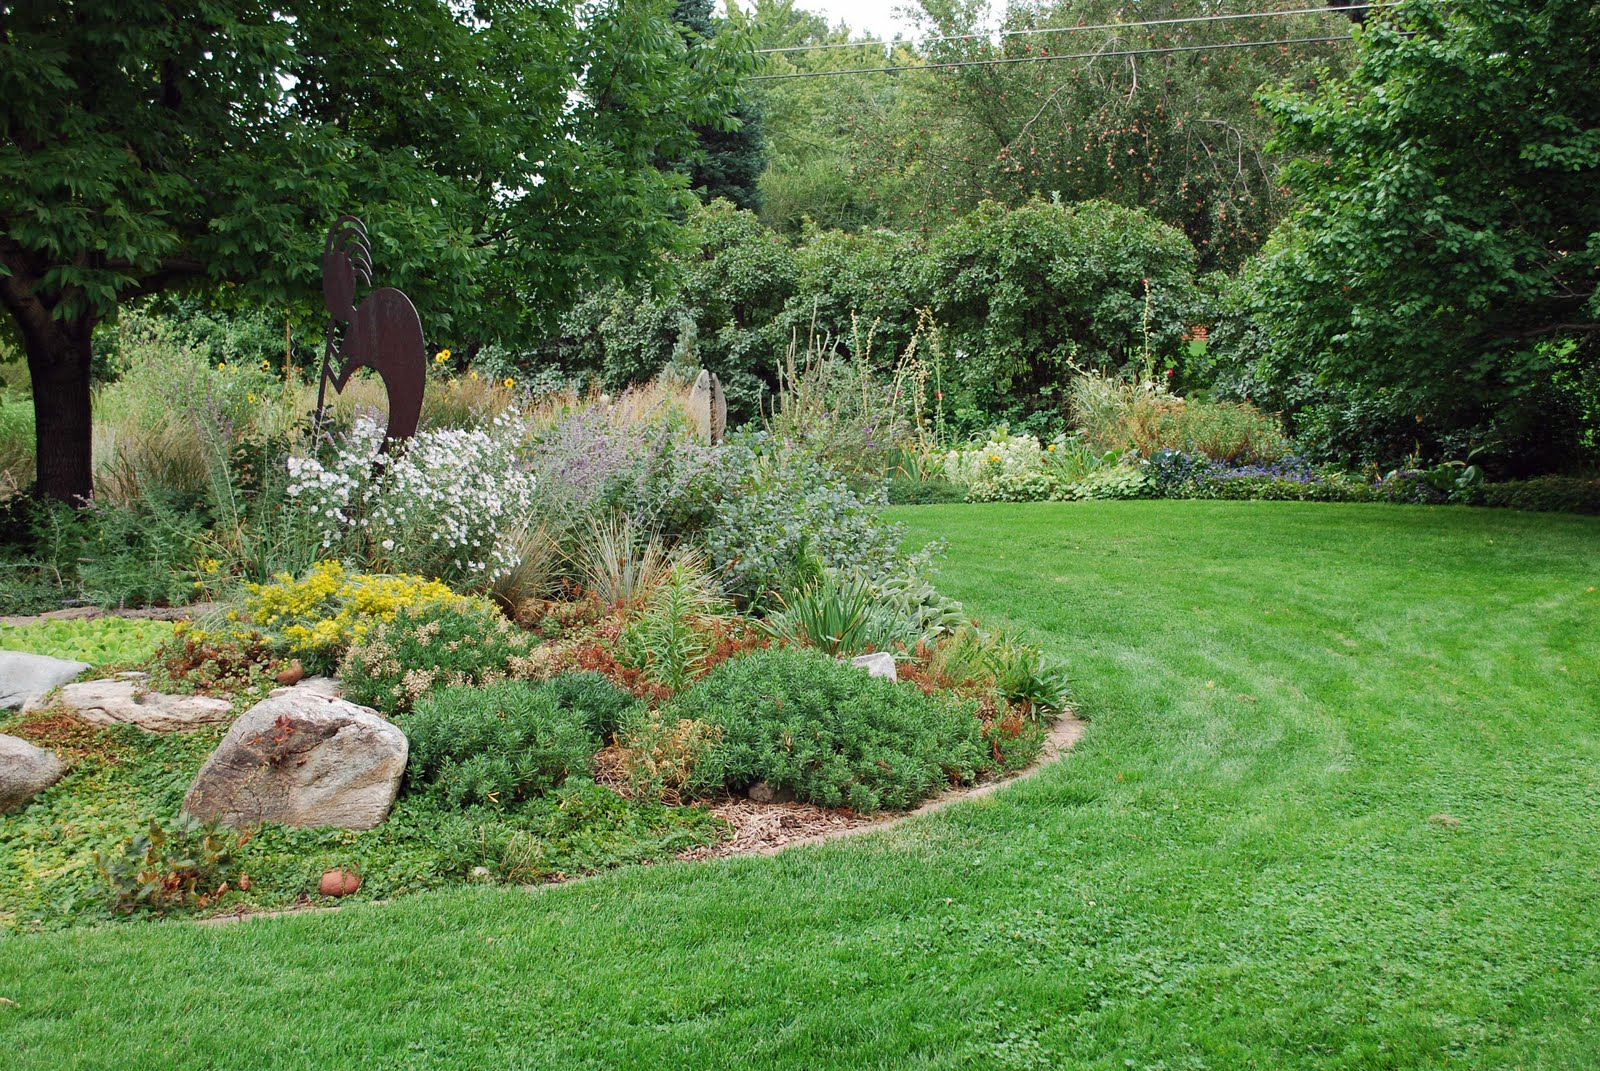 The art garden landscape design focus low maintenance for Low maintenance garden design pictures